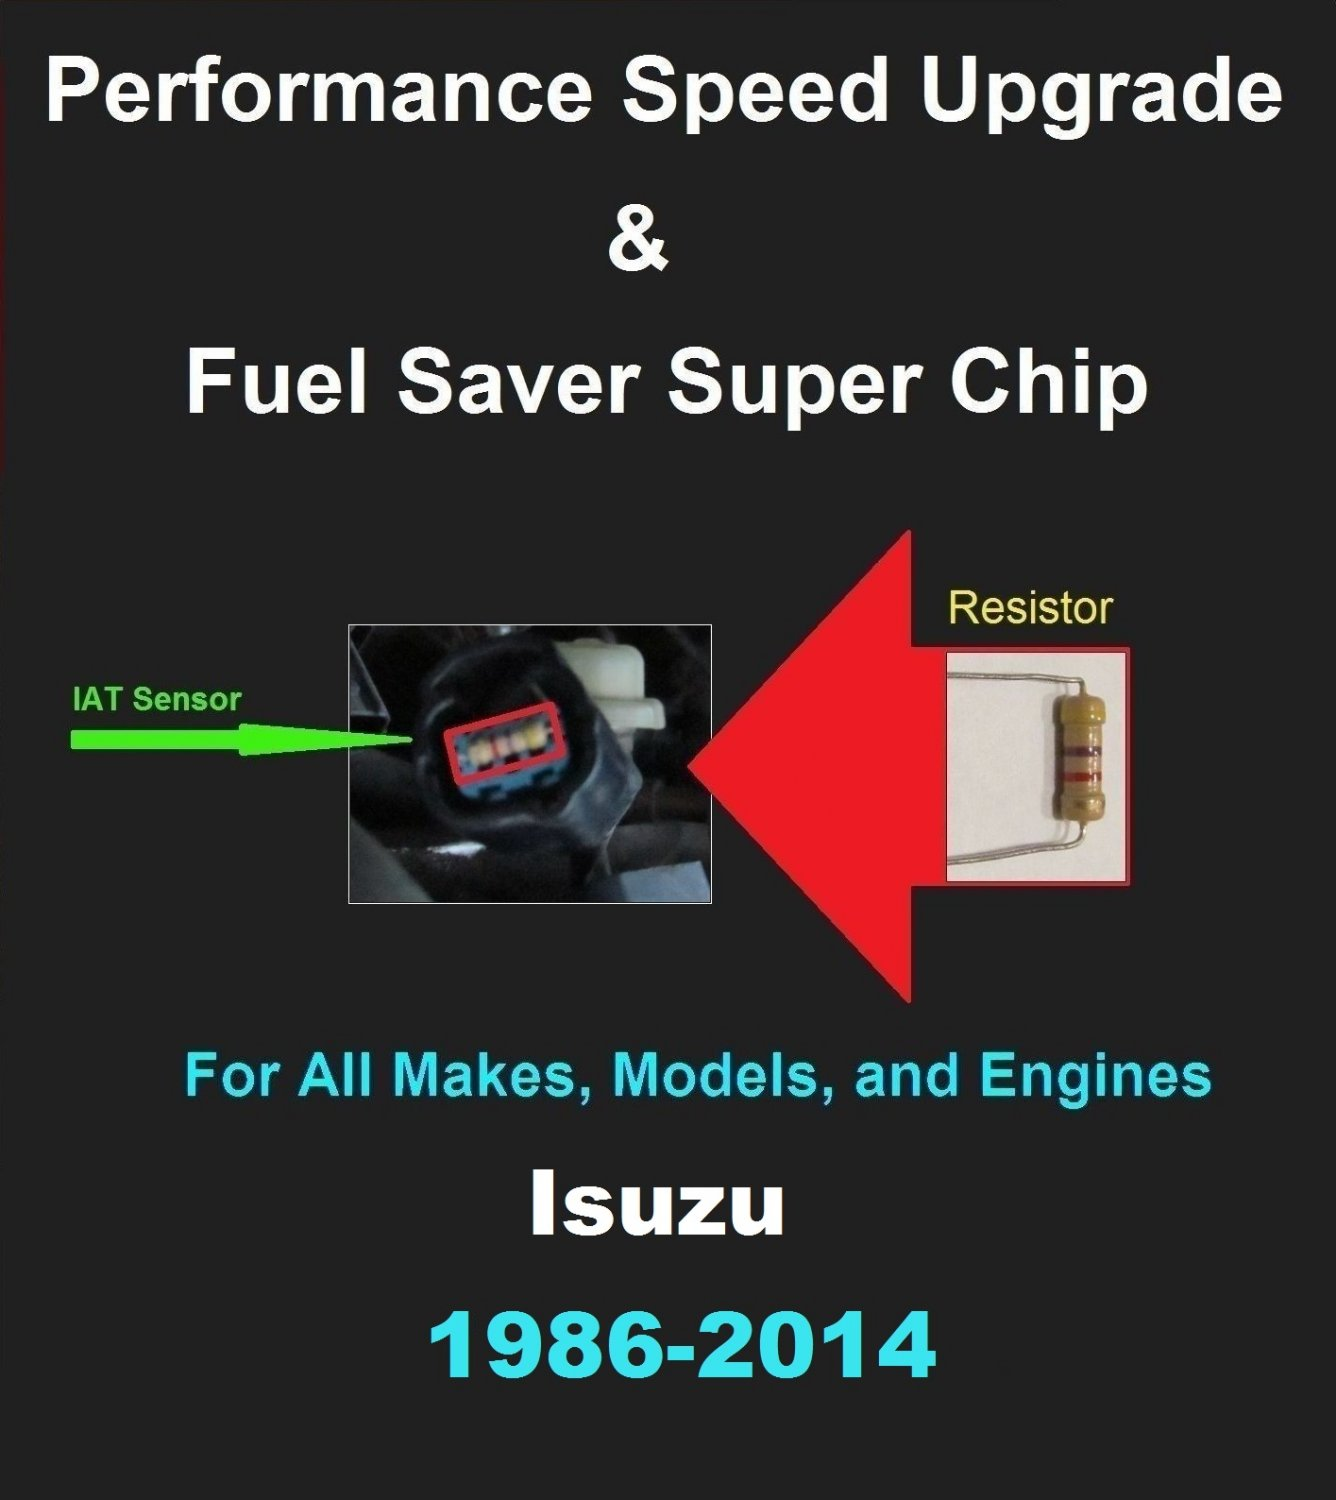 Isuzu Performance IAT Sensor Resistor Chip Mod Kit Increase MPG HP Speed Power Super Fuel Gas Saver